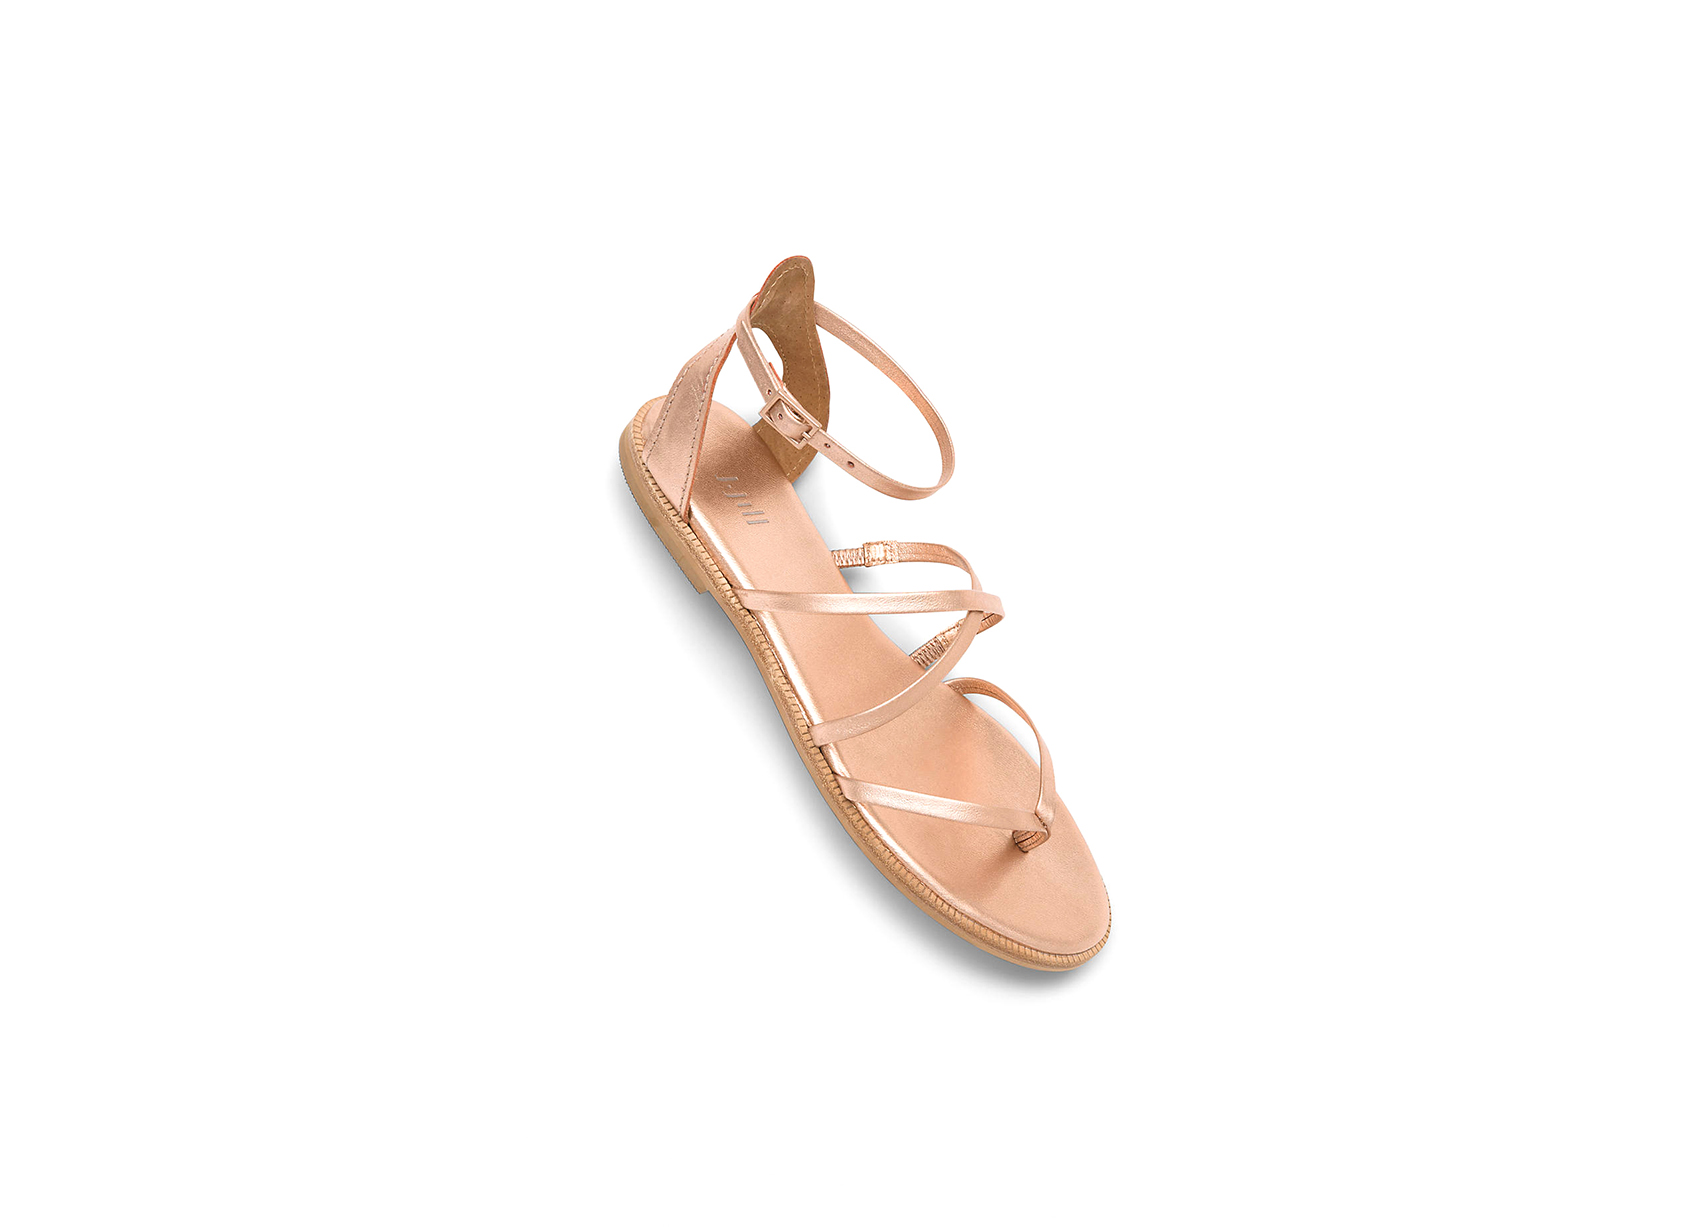 J.Jill Rose Gold Strappy Sandals